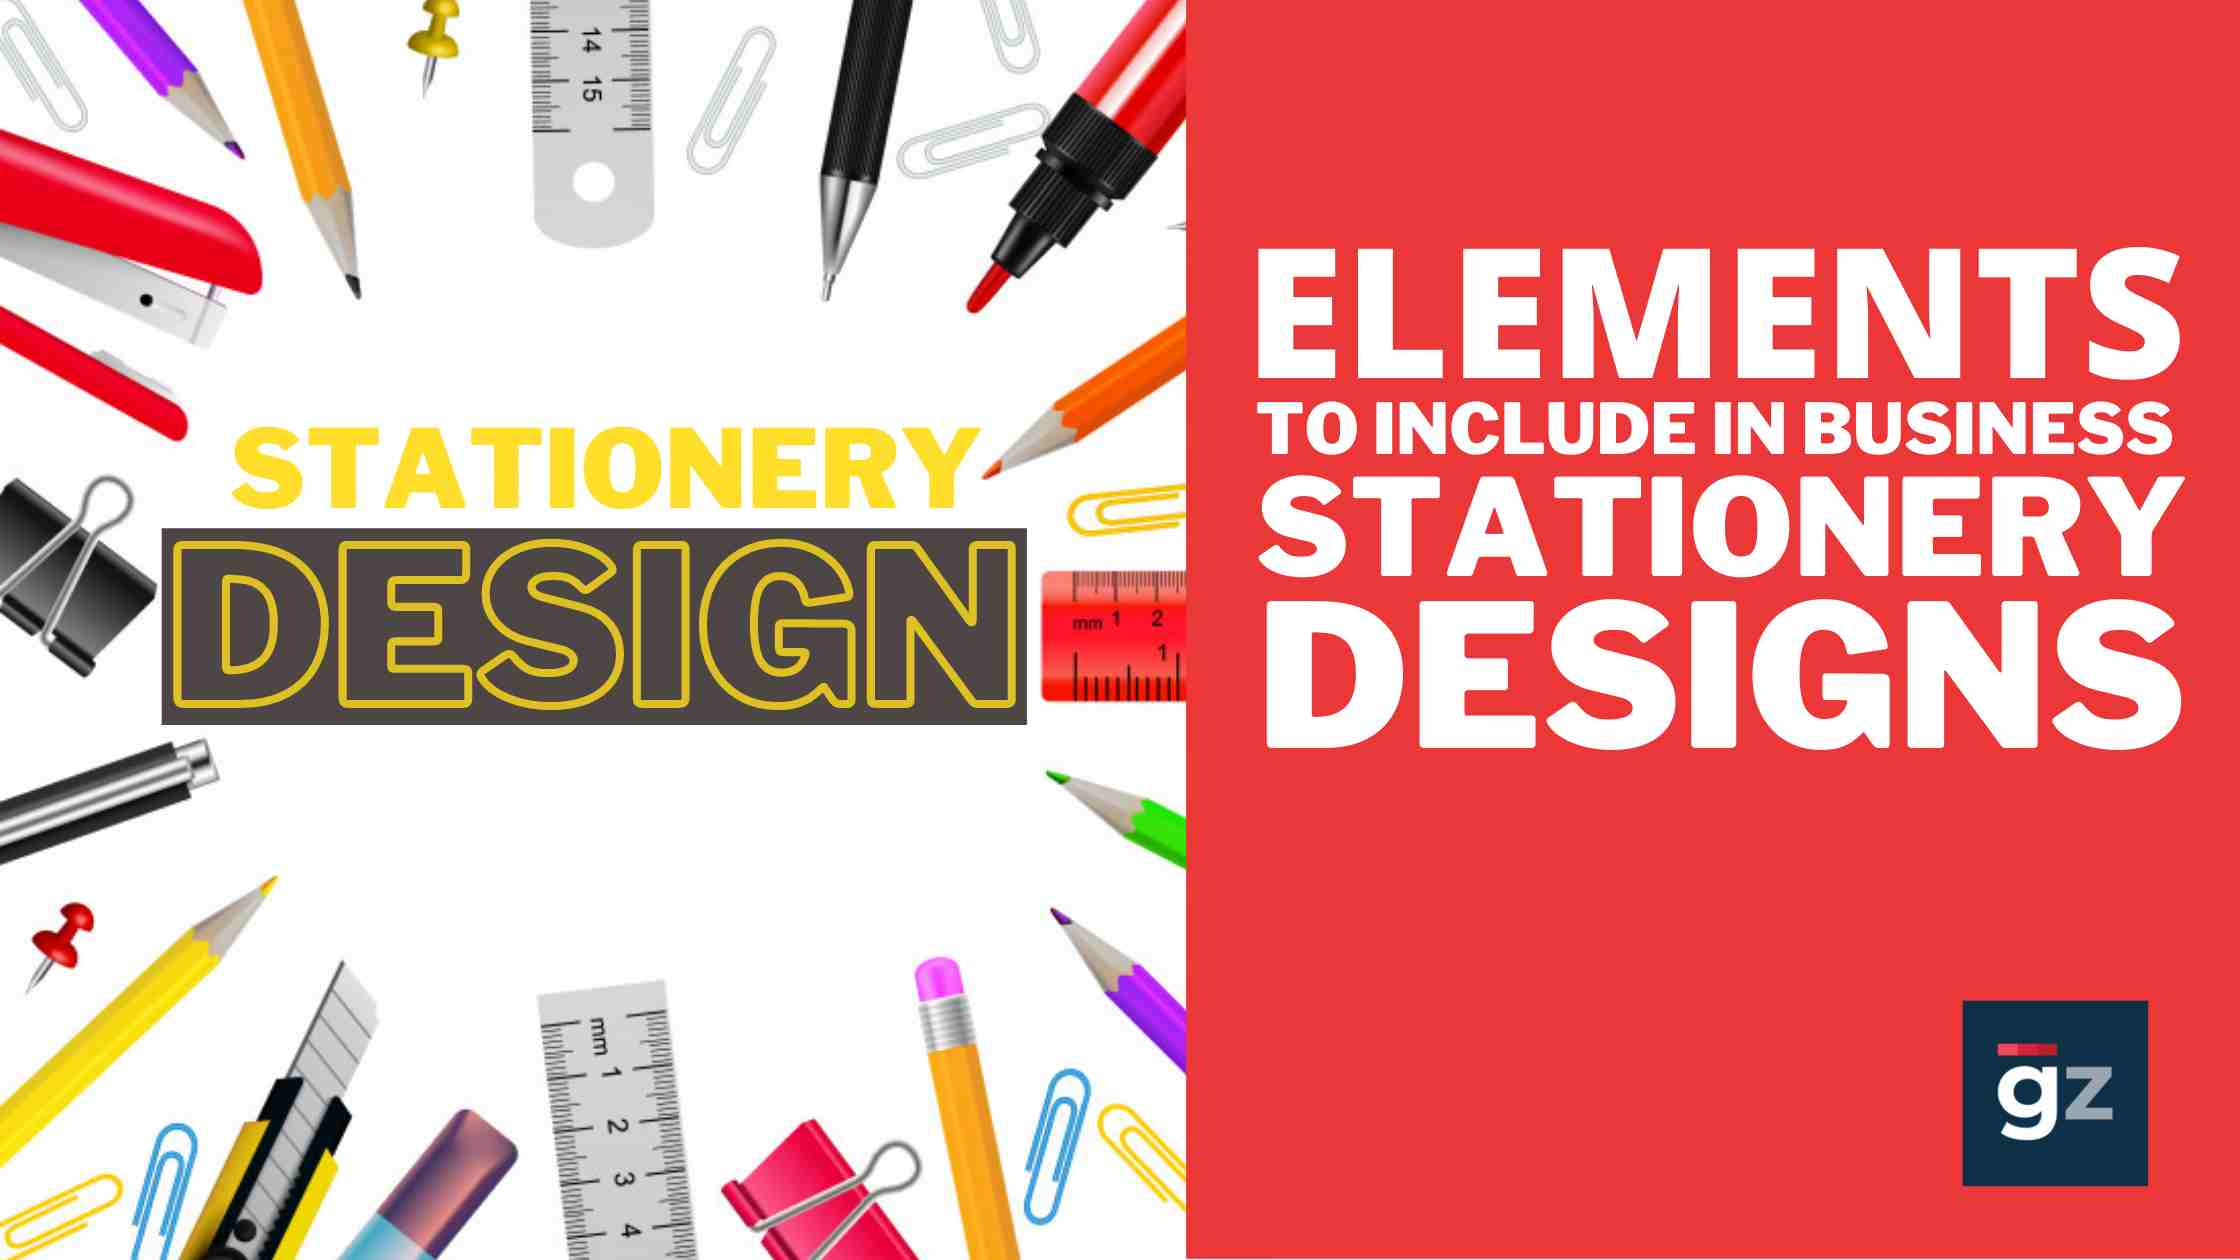 7 Elements To Include In Business Stationery Designs